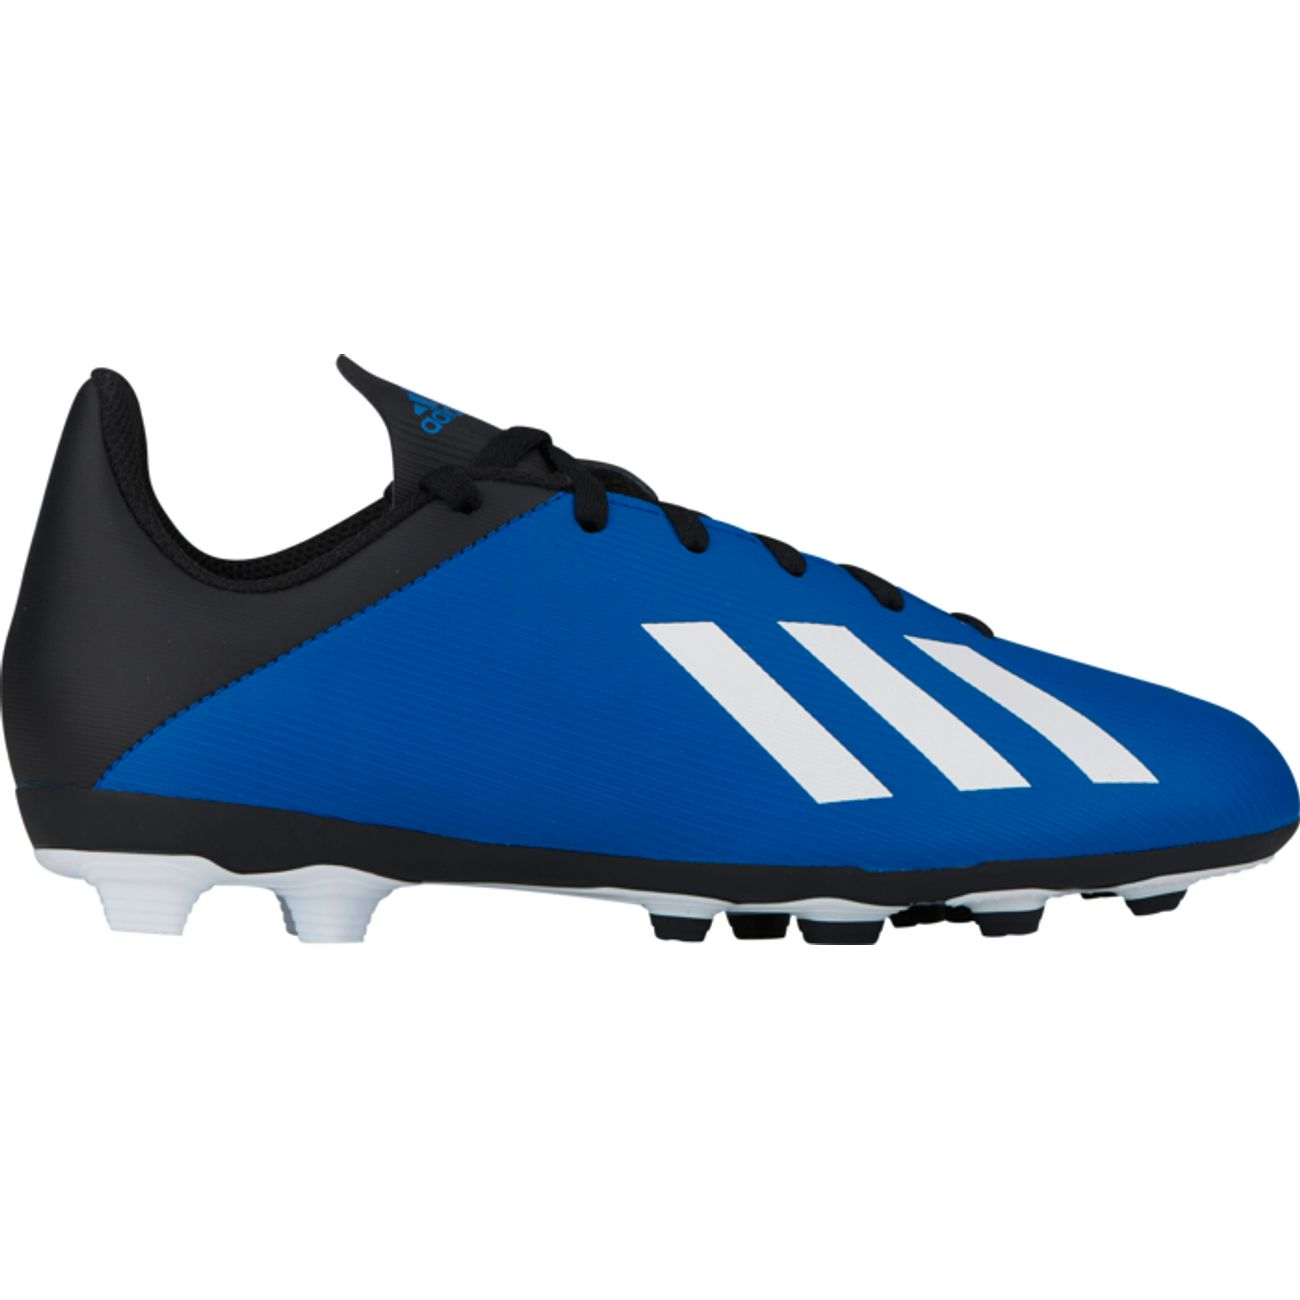 CHAUSSURES Football adulte ADIDAS X 19.4 FXG